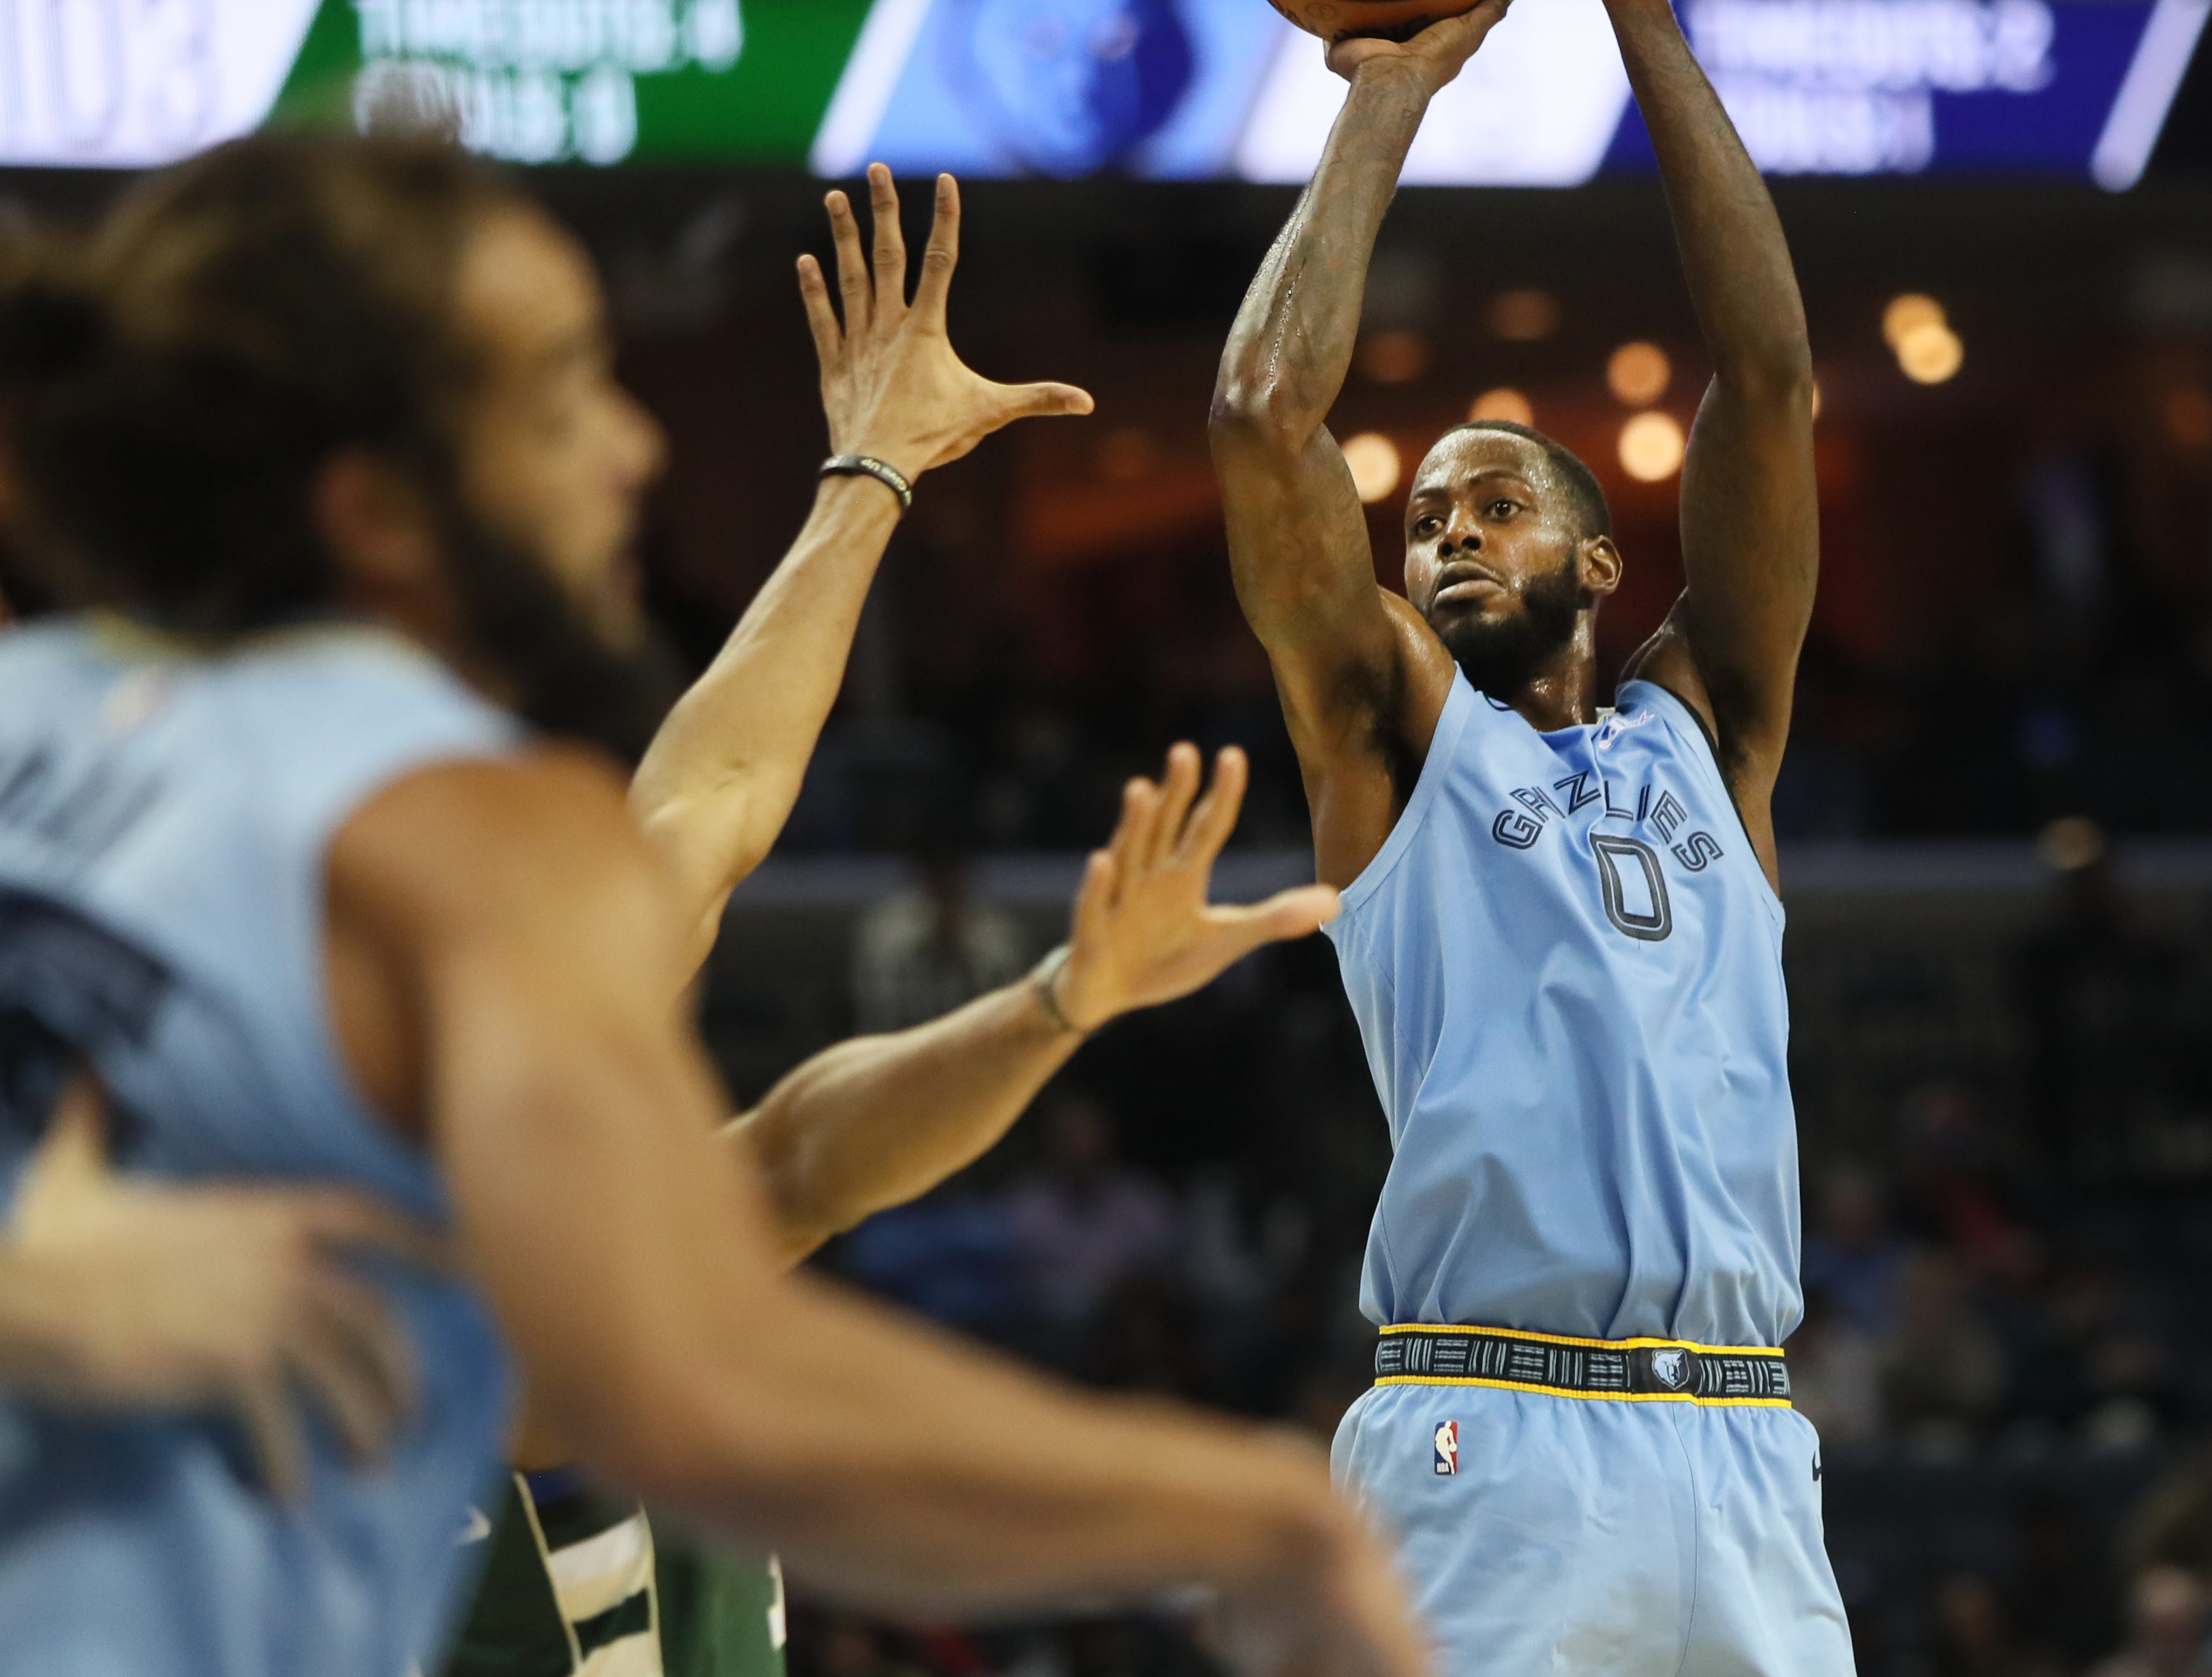 Memphis Grizzlies forward JaMychal Green shoots the ball against the Milwaukee Bucks during their game at the FedExForum on Wednesday, Jan. 16, 2019.